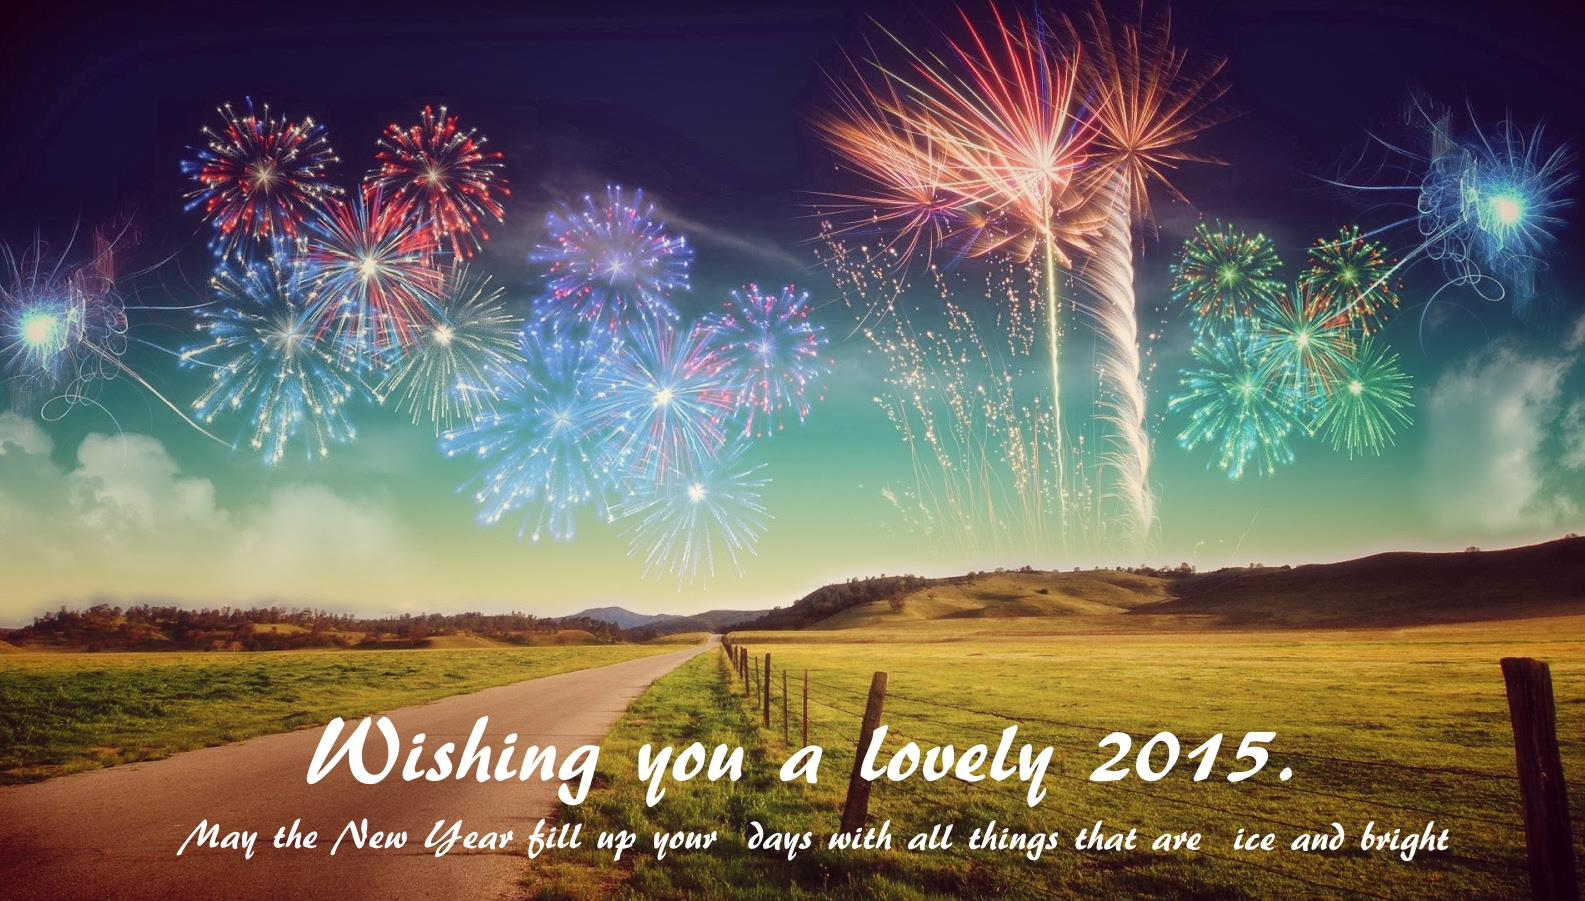 Amazing New Year Wishes Wallpapers: New Year Wishes 2015 Wallpaper Hd